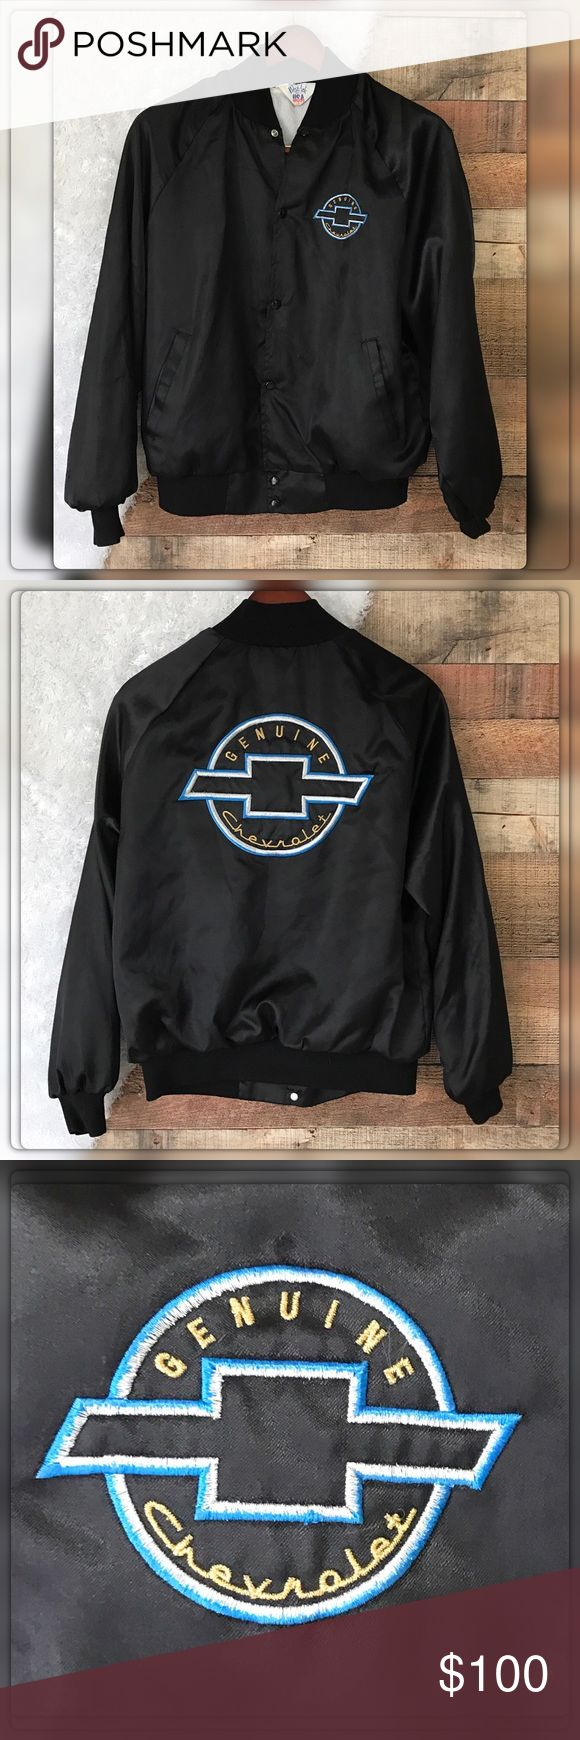 """Vintage Men's L Genuine Chevrolet Bomber Jacket Vintage West Ark Made In USA Men's L Genuine Chevrolet Bomber Satin Jacket 1980's Sheel 100% Nylon Lining 85% Acetate 15% Nylon. Pit to pit measures 26"""" Length 25.5"""" Collar to Cuff 33"""" Only flaw is run pull on Top front West Ark Jackets & Coats Bomber & Varsity"""